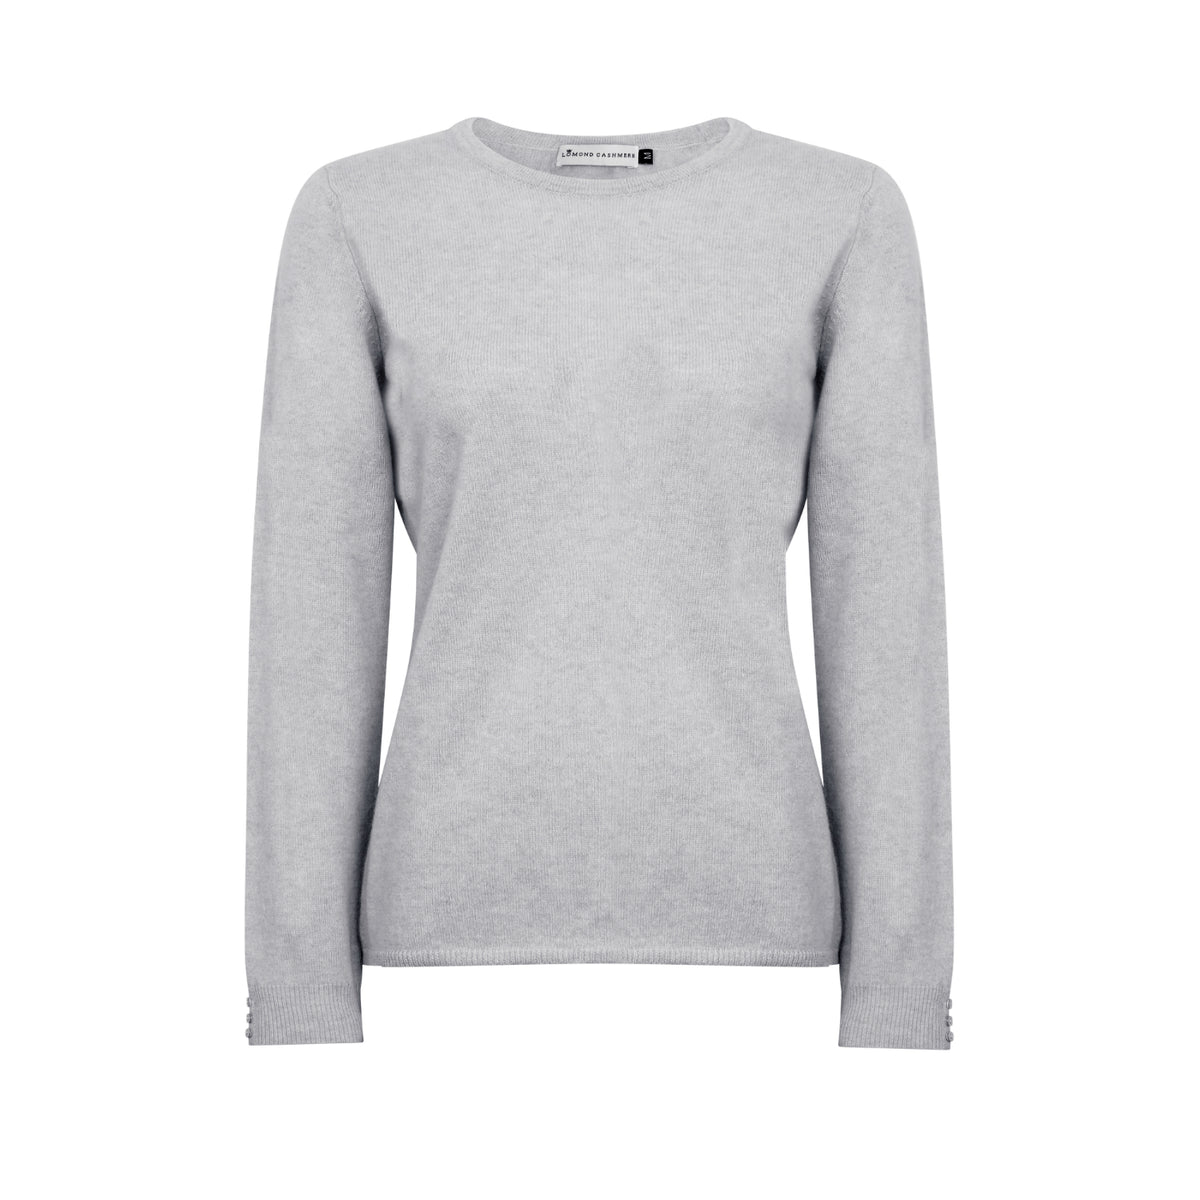 Lomond Cashmere | Ladies 2-Ply Cashmere Round Neck | Light Grey | Shop now at The Cashmere Choice | London